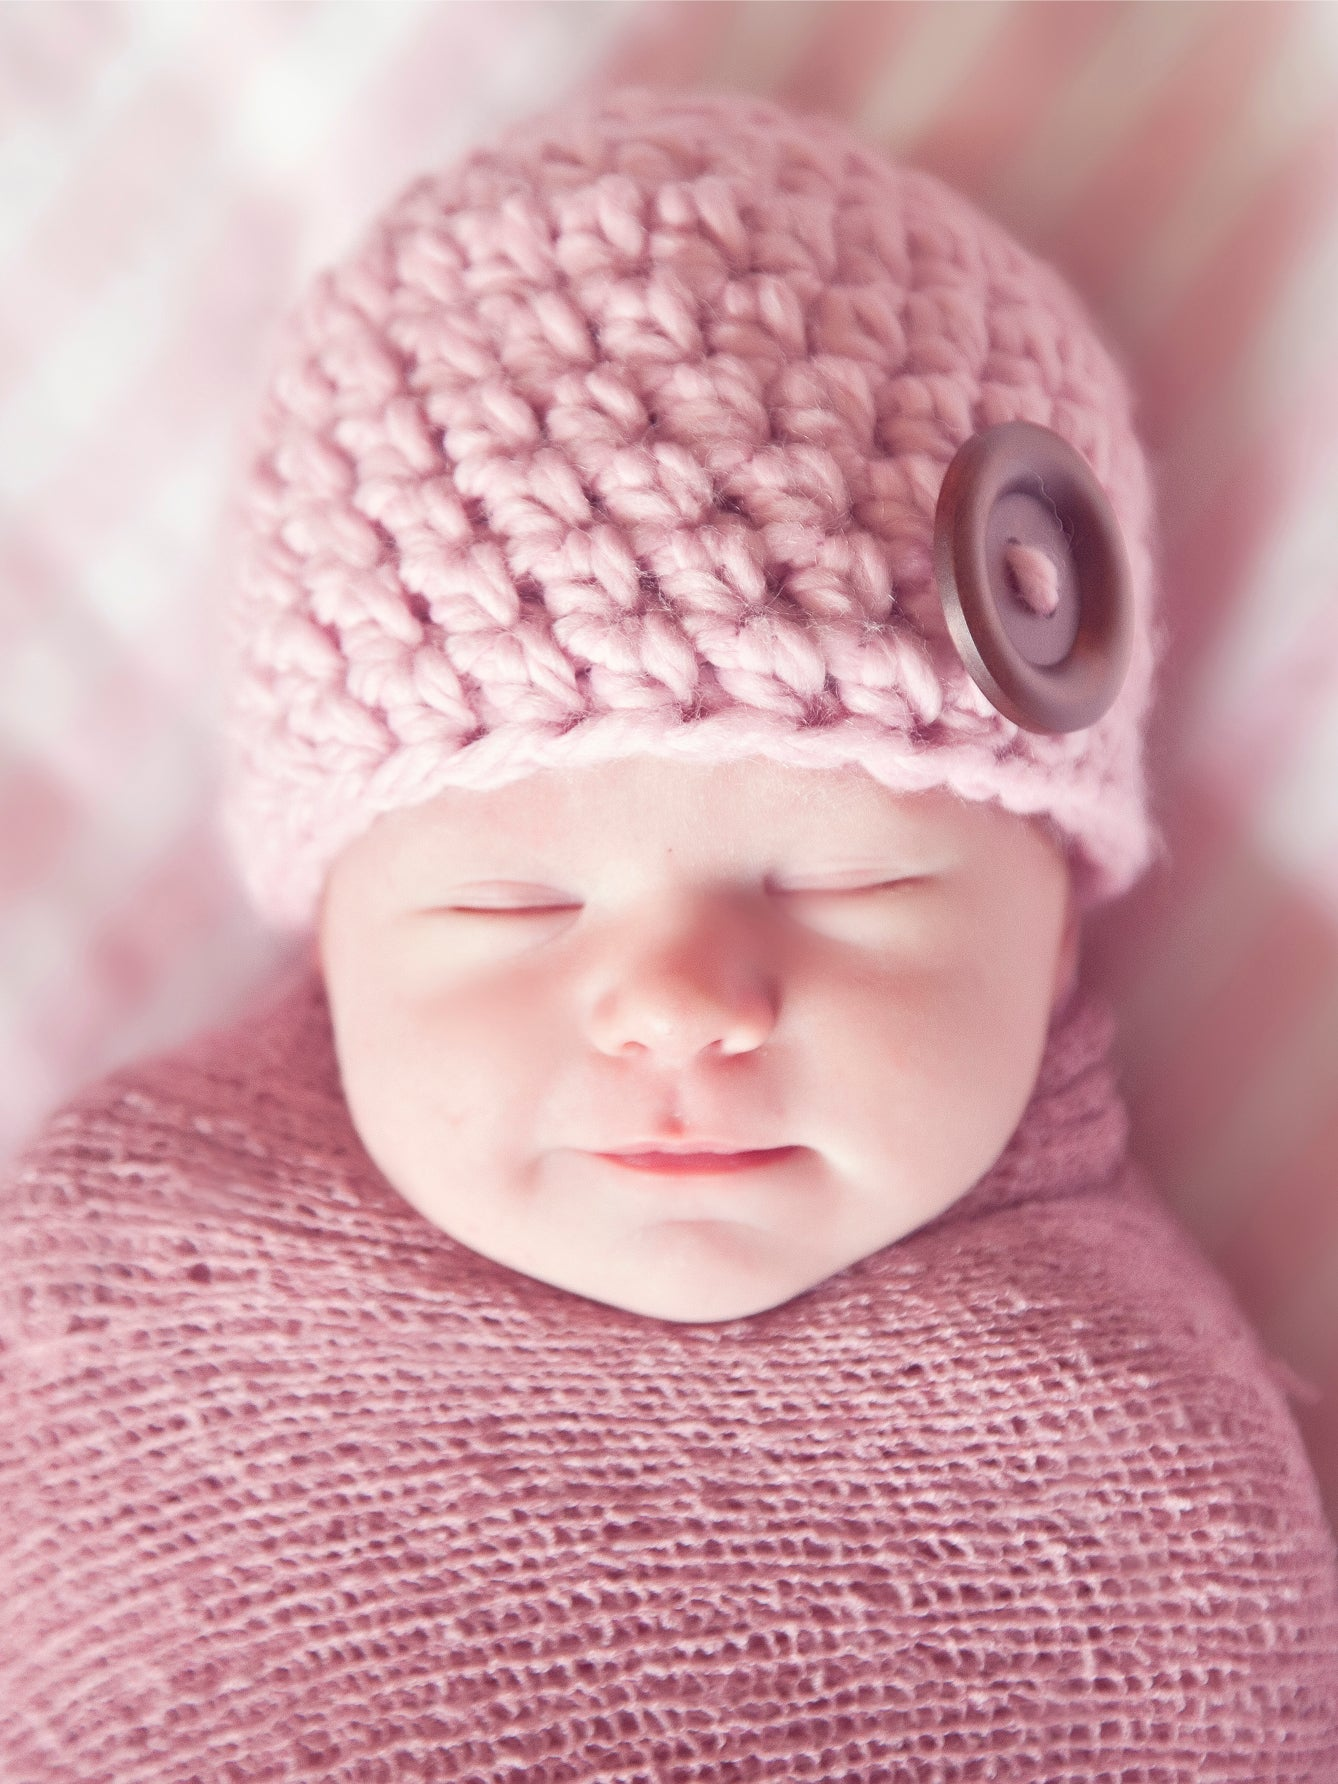 Pink blossom button beanie baby hat by Two Seaside Babes